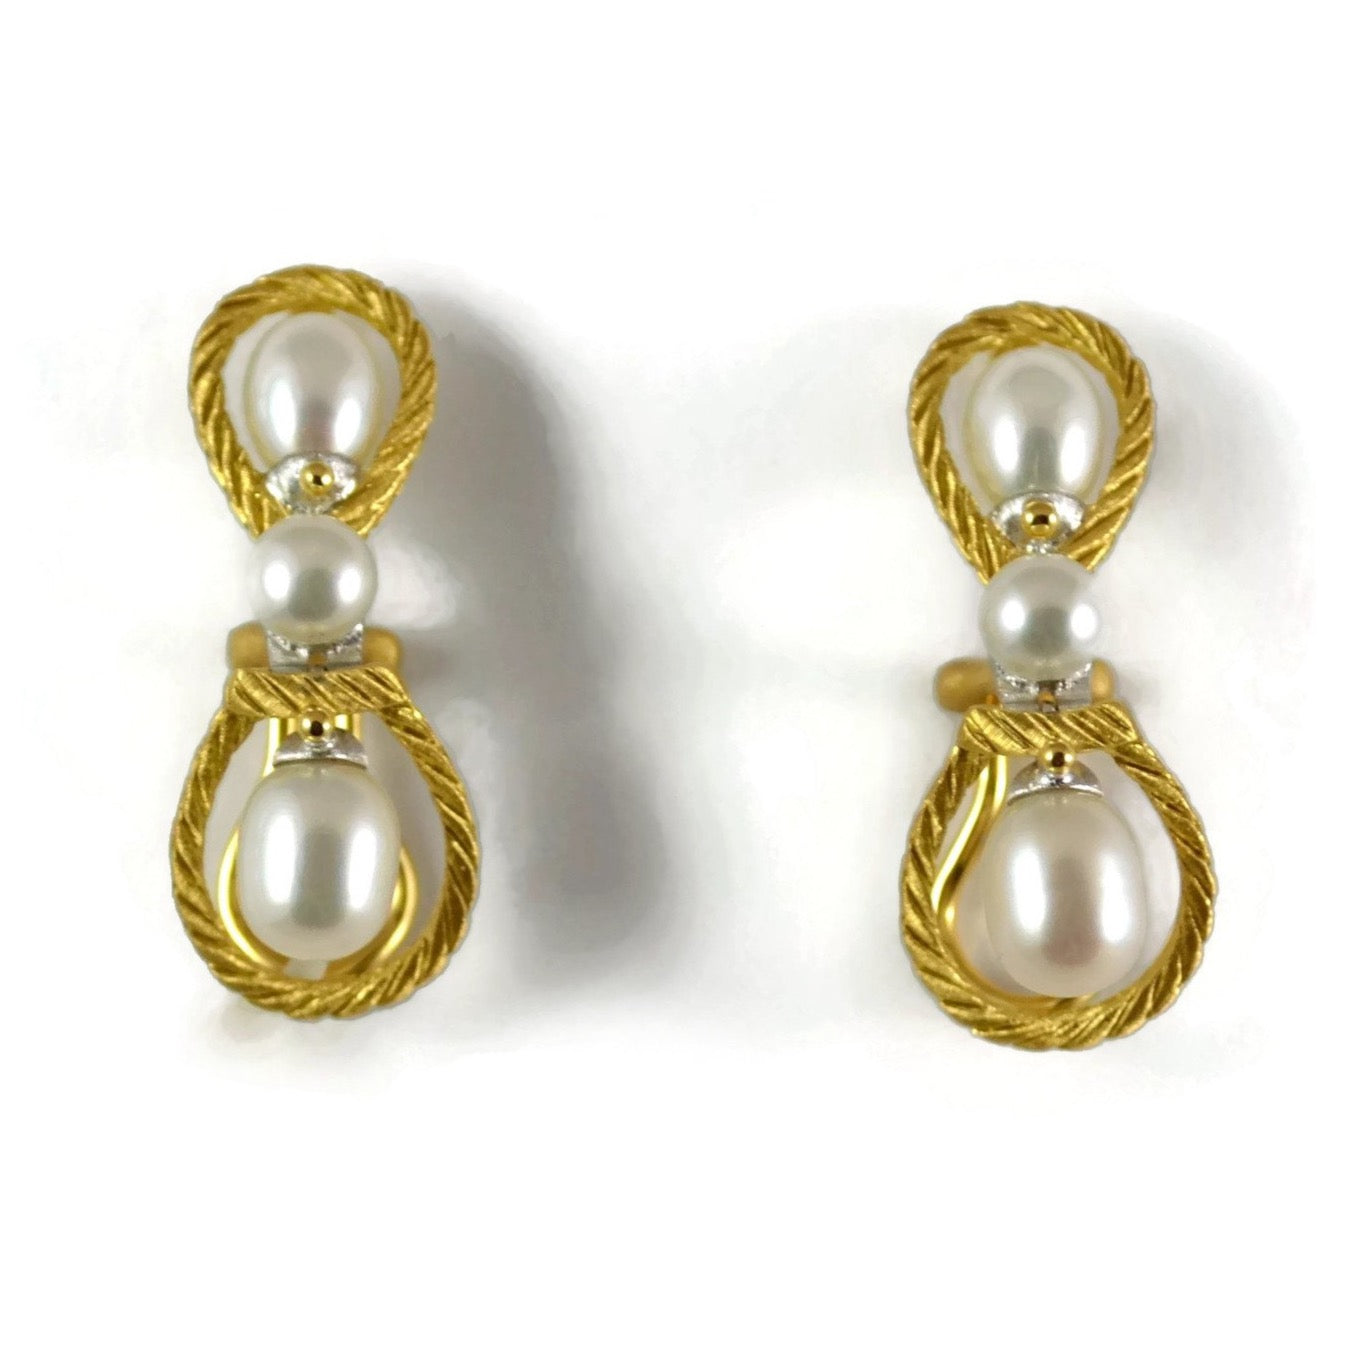 firenze c earrings shop yellow coi zunino and kt gold with pearls diamonds